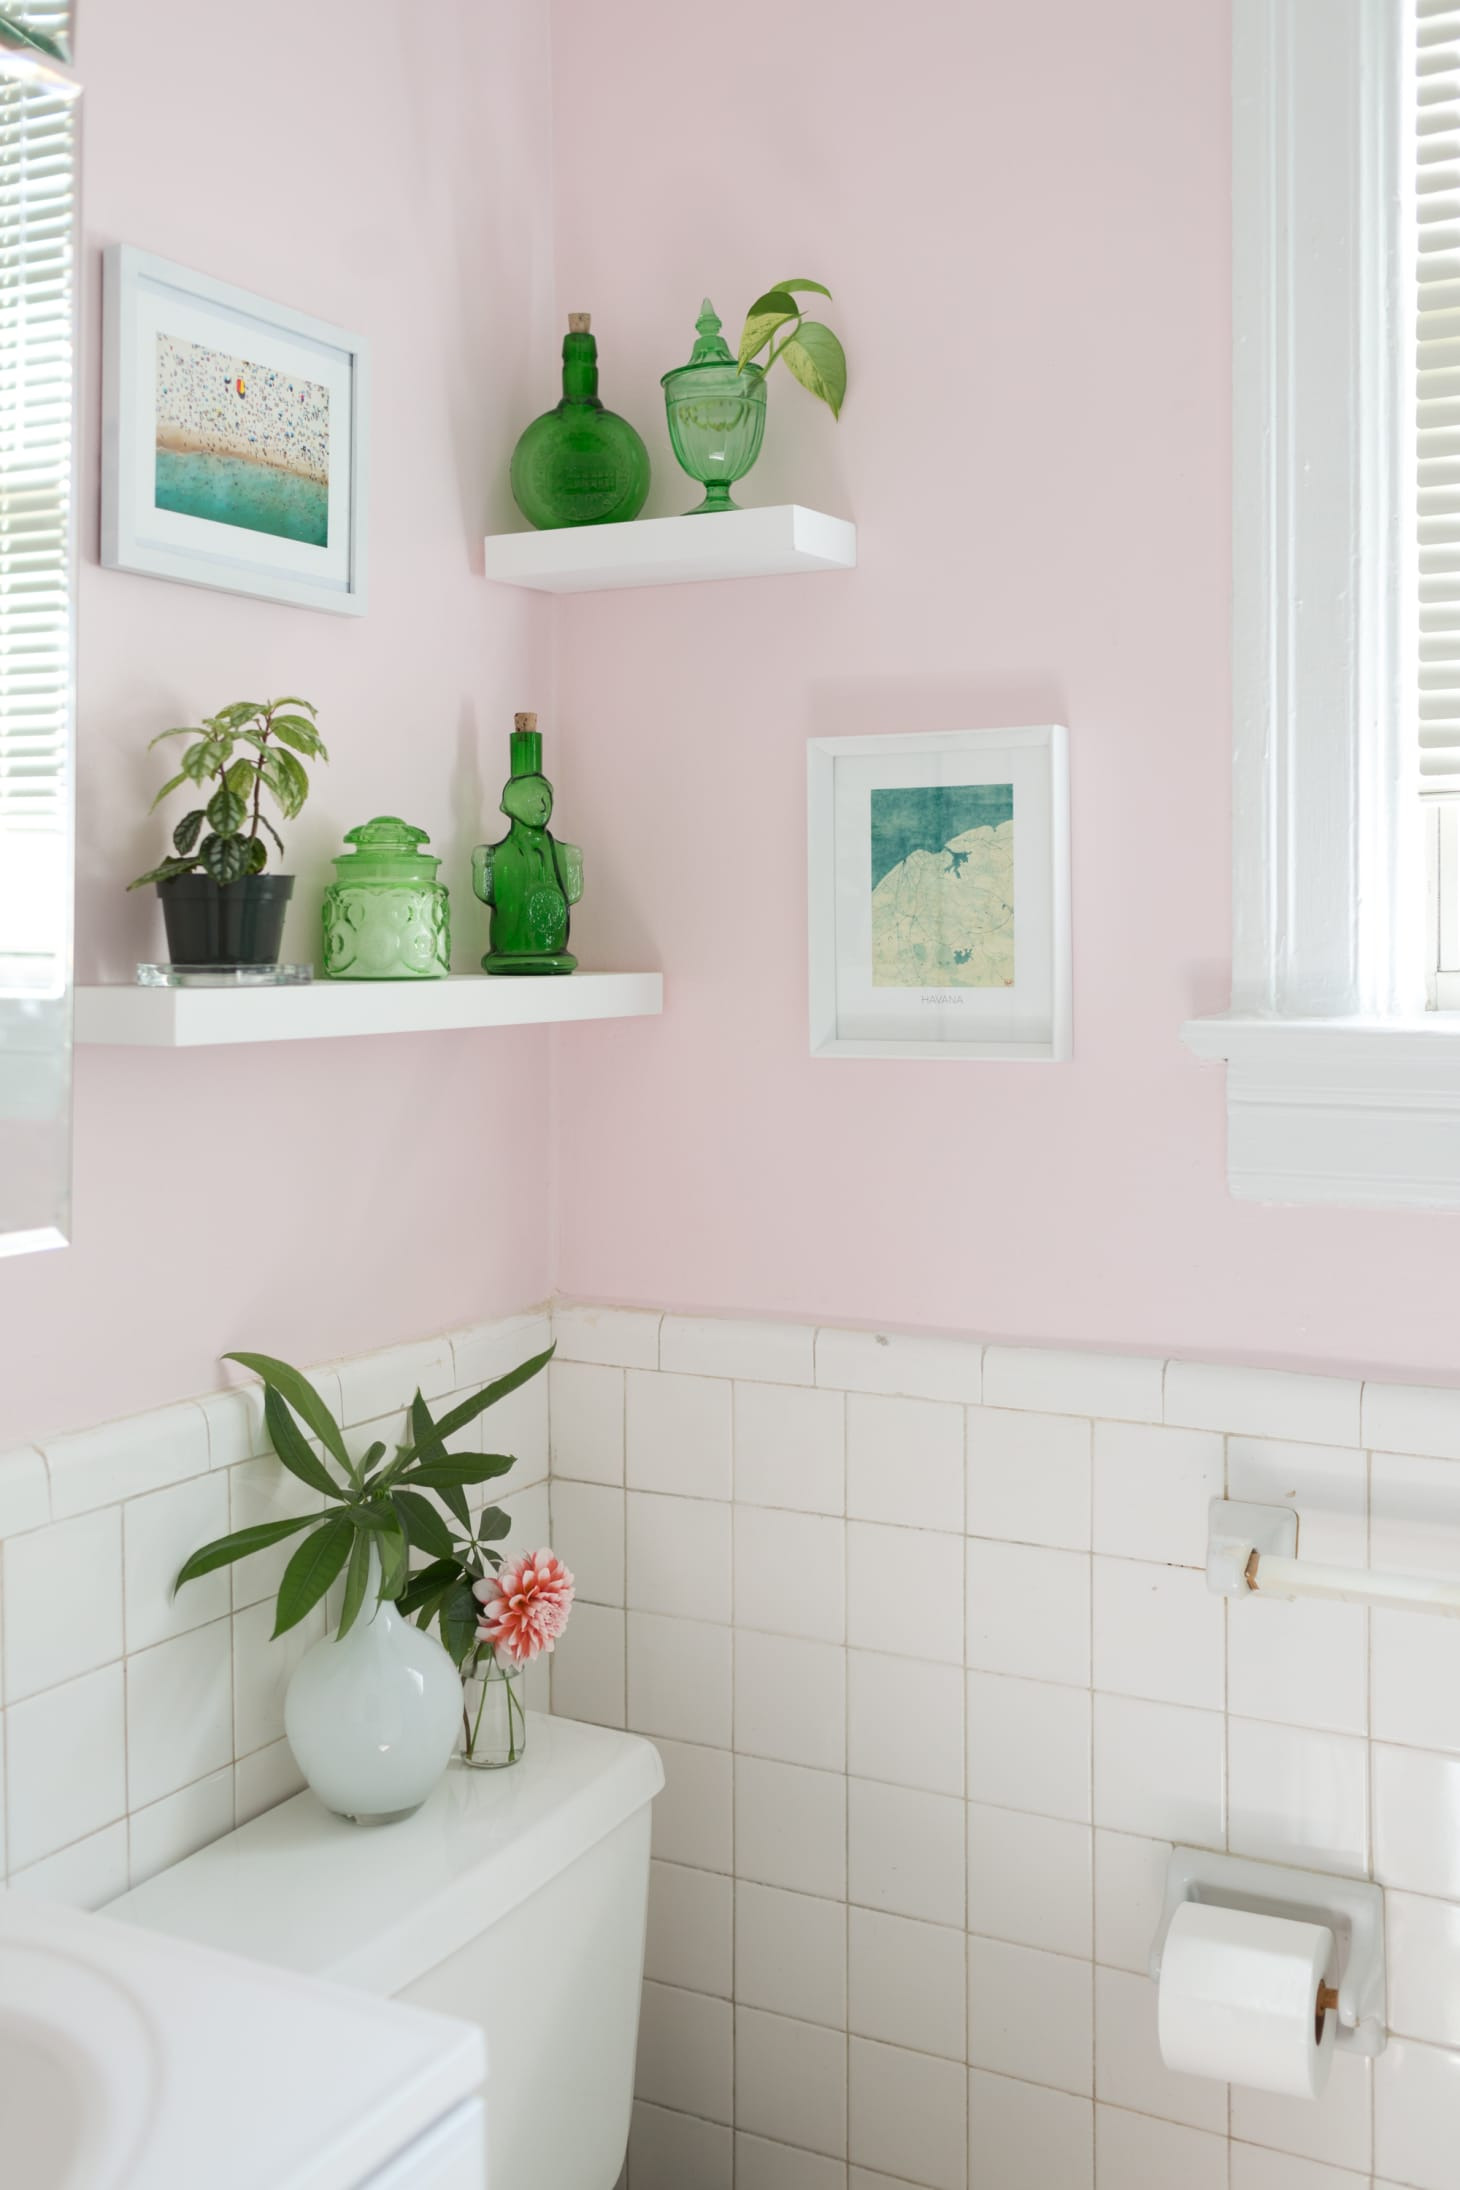 Decoration Ideas for Small Bathrooms Inspirational 50 Best Small Bathroom Decorating Ideas Tiny Bathroom